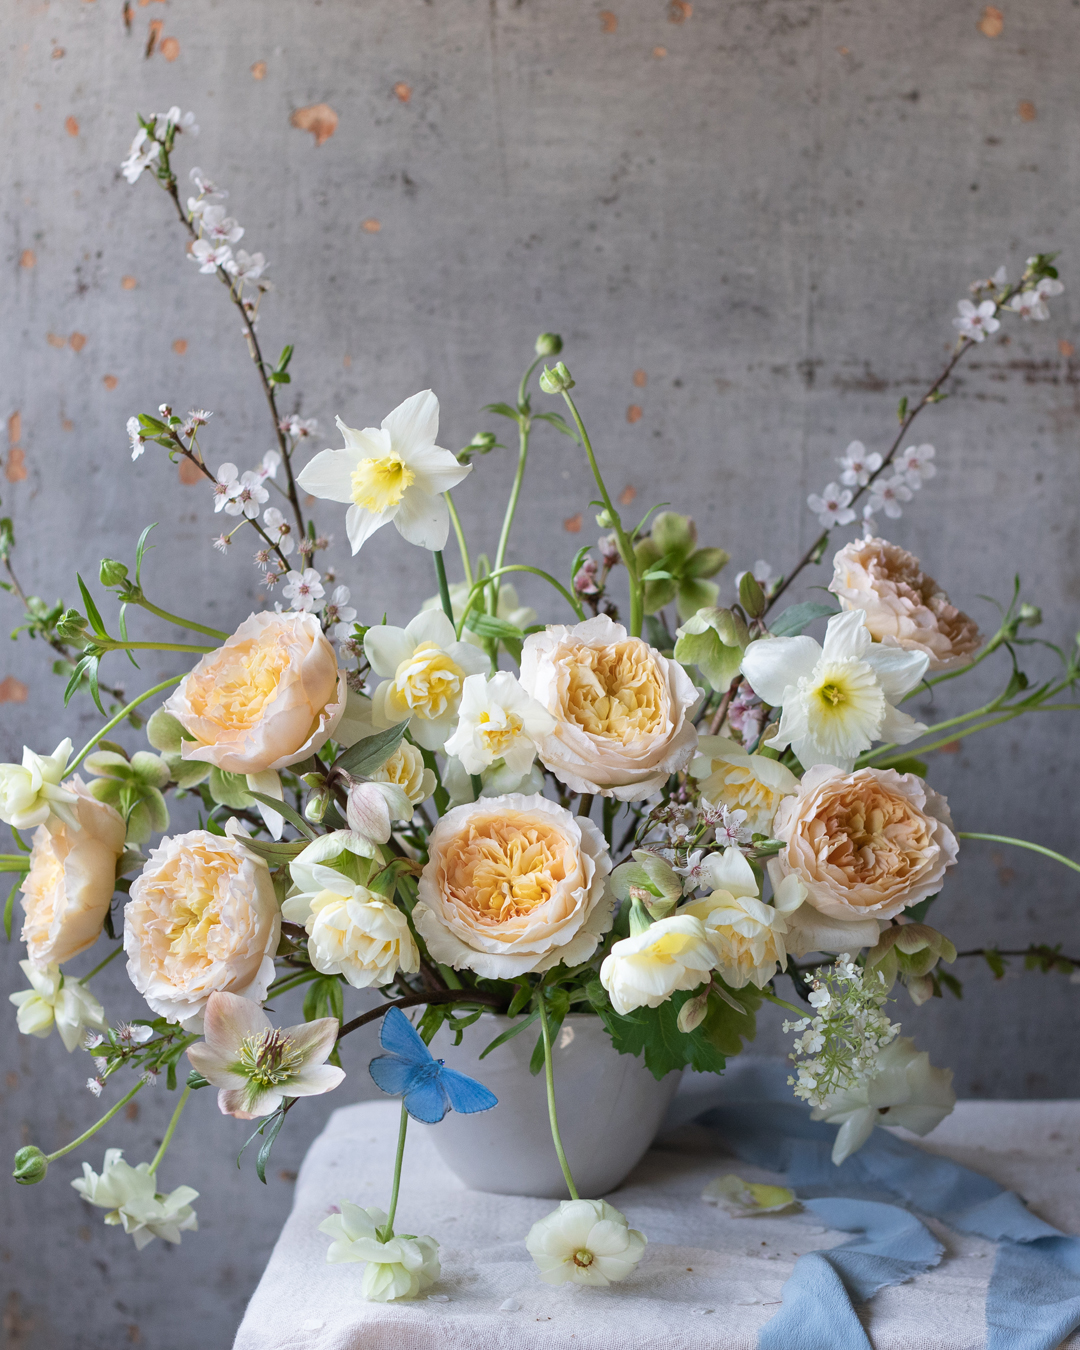 How To Make A Professional Looking Floral Arrangement At Home